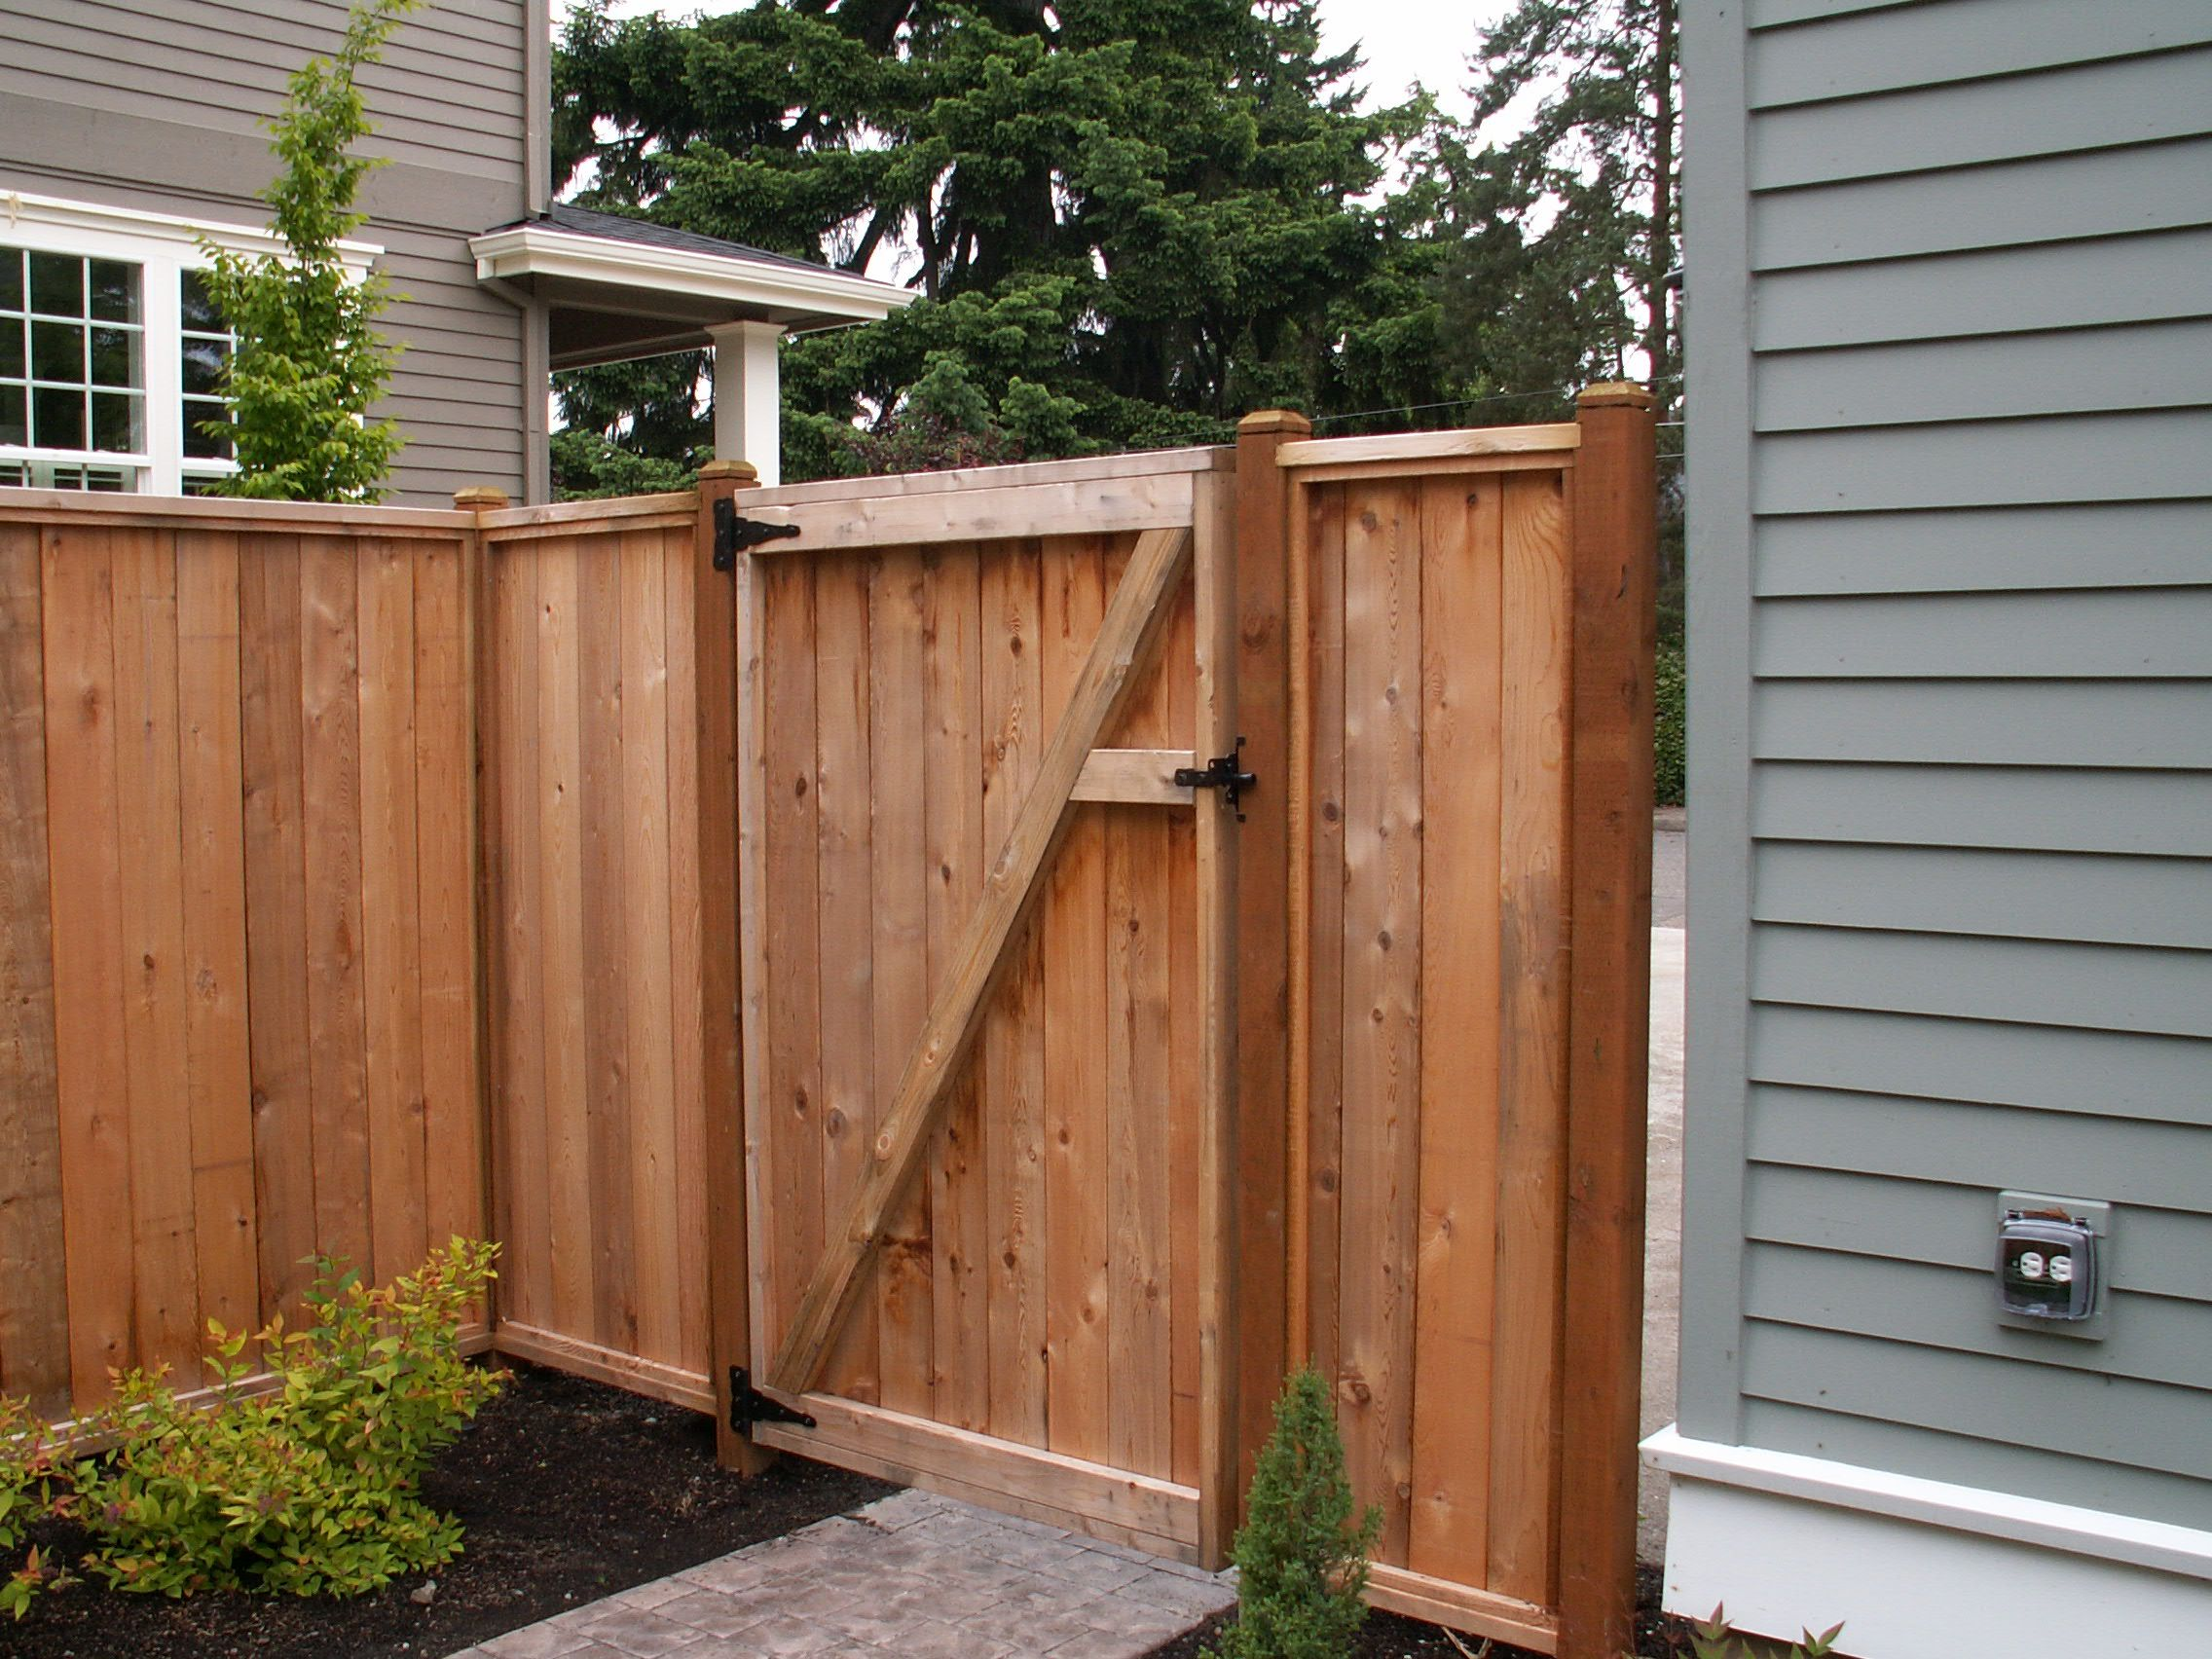 Wood Fence With Gate (503)760-7725 #fence #superiorfence